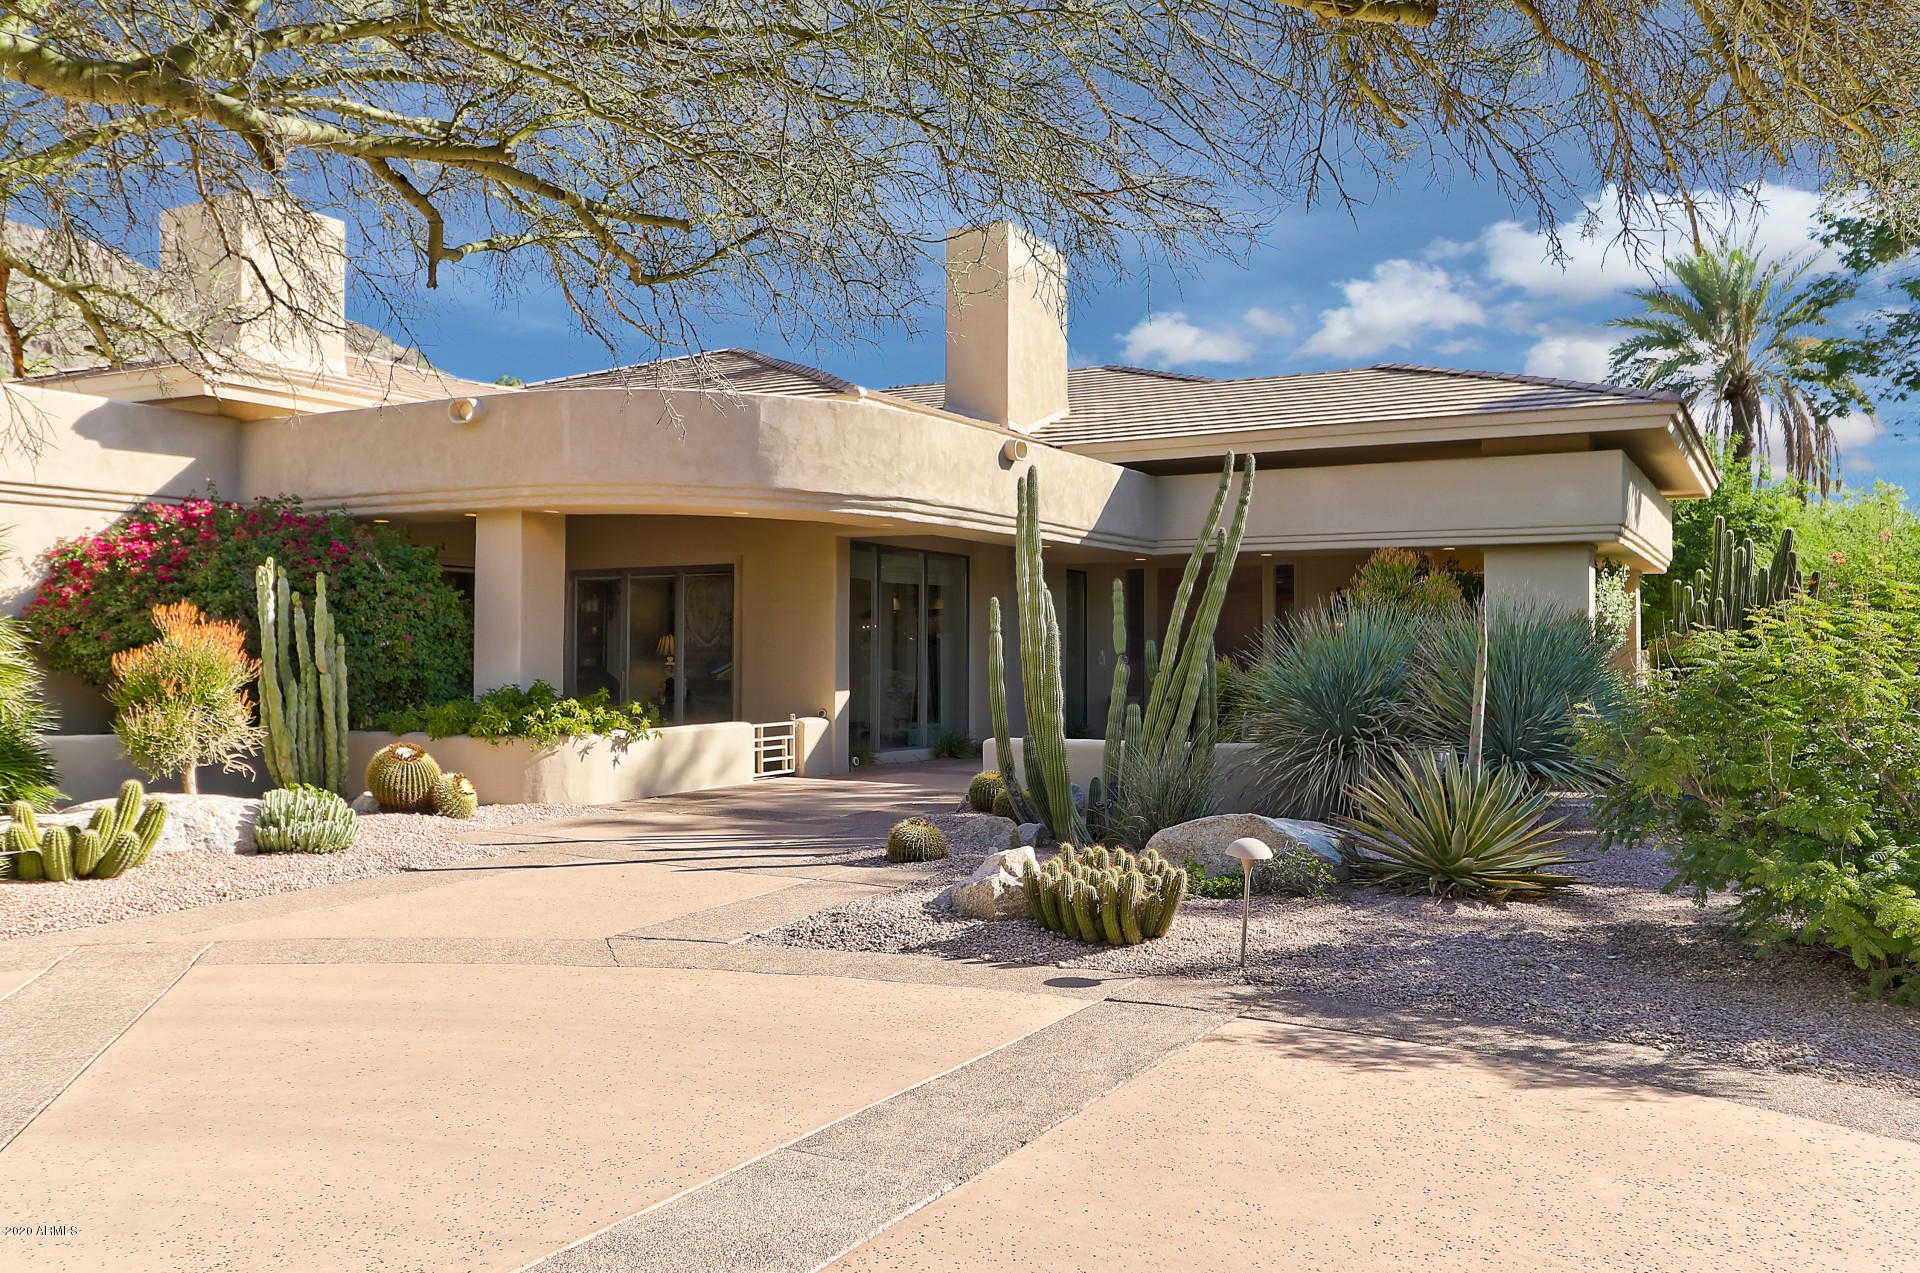 $2,895,000 - 4Br/6Ba - Home for Sale in Whispering Hills, Paradise Valley